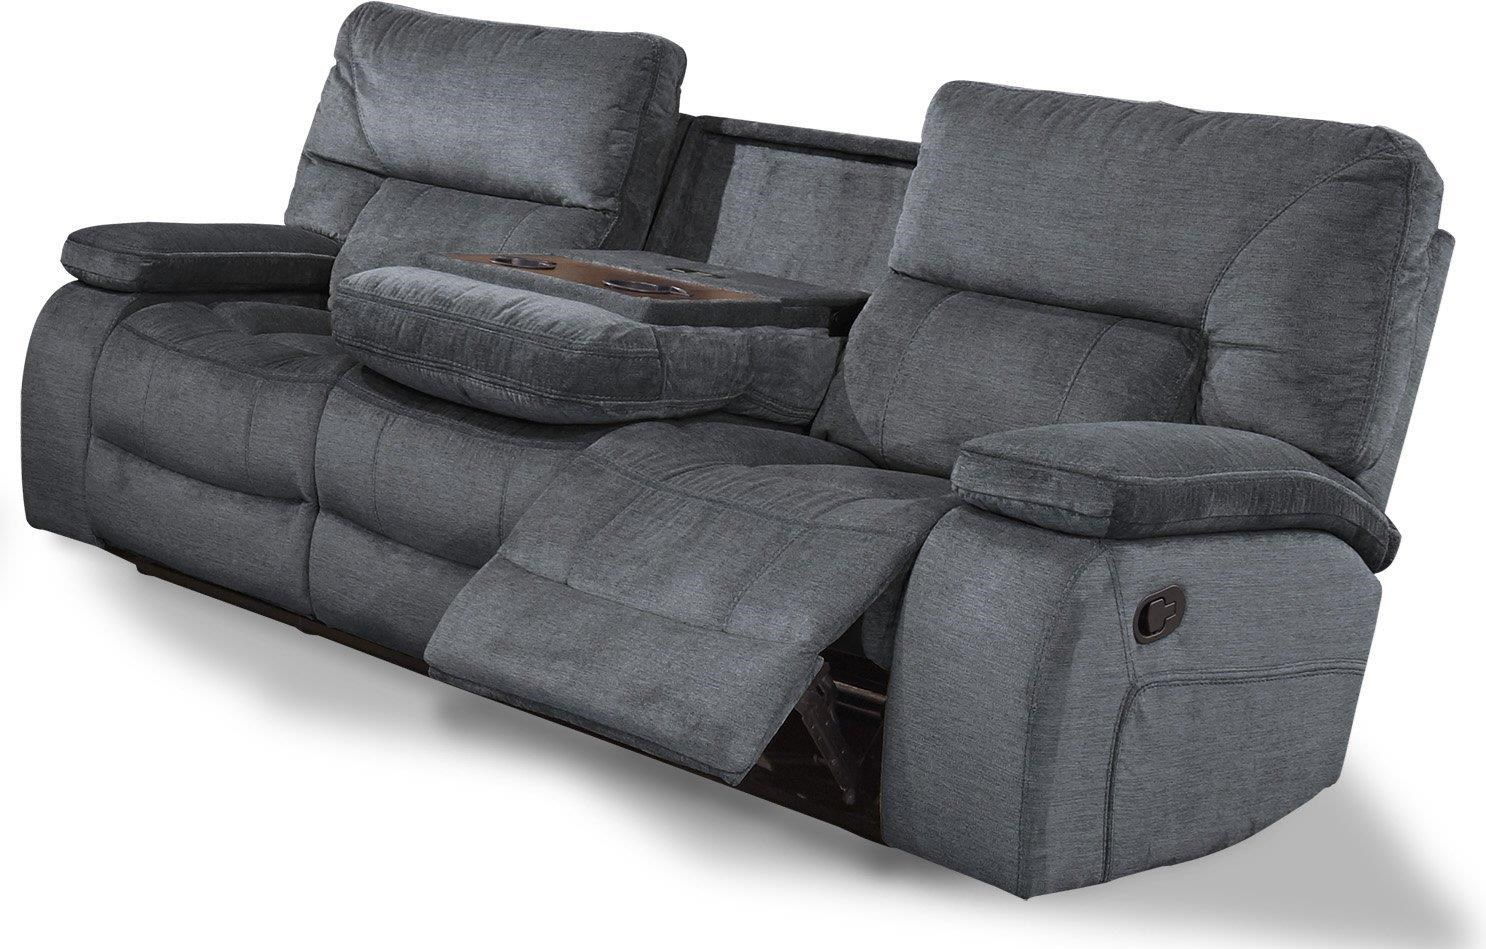 chapman Reclining sofa with drop down table by Parker House at Johnny Janosik